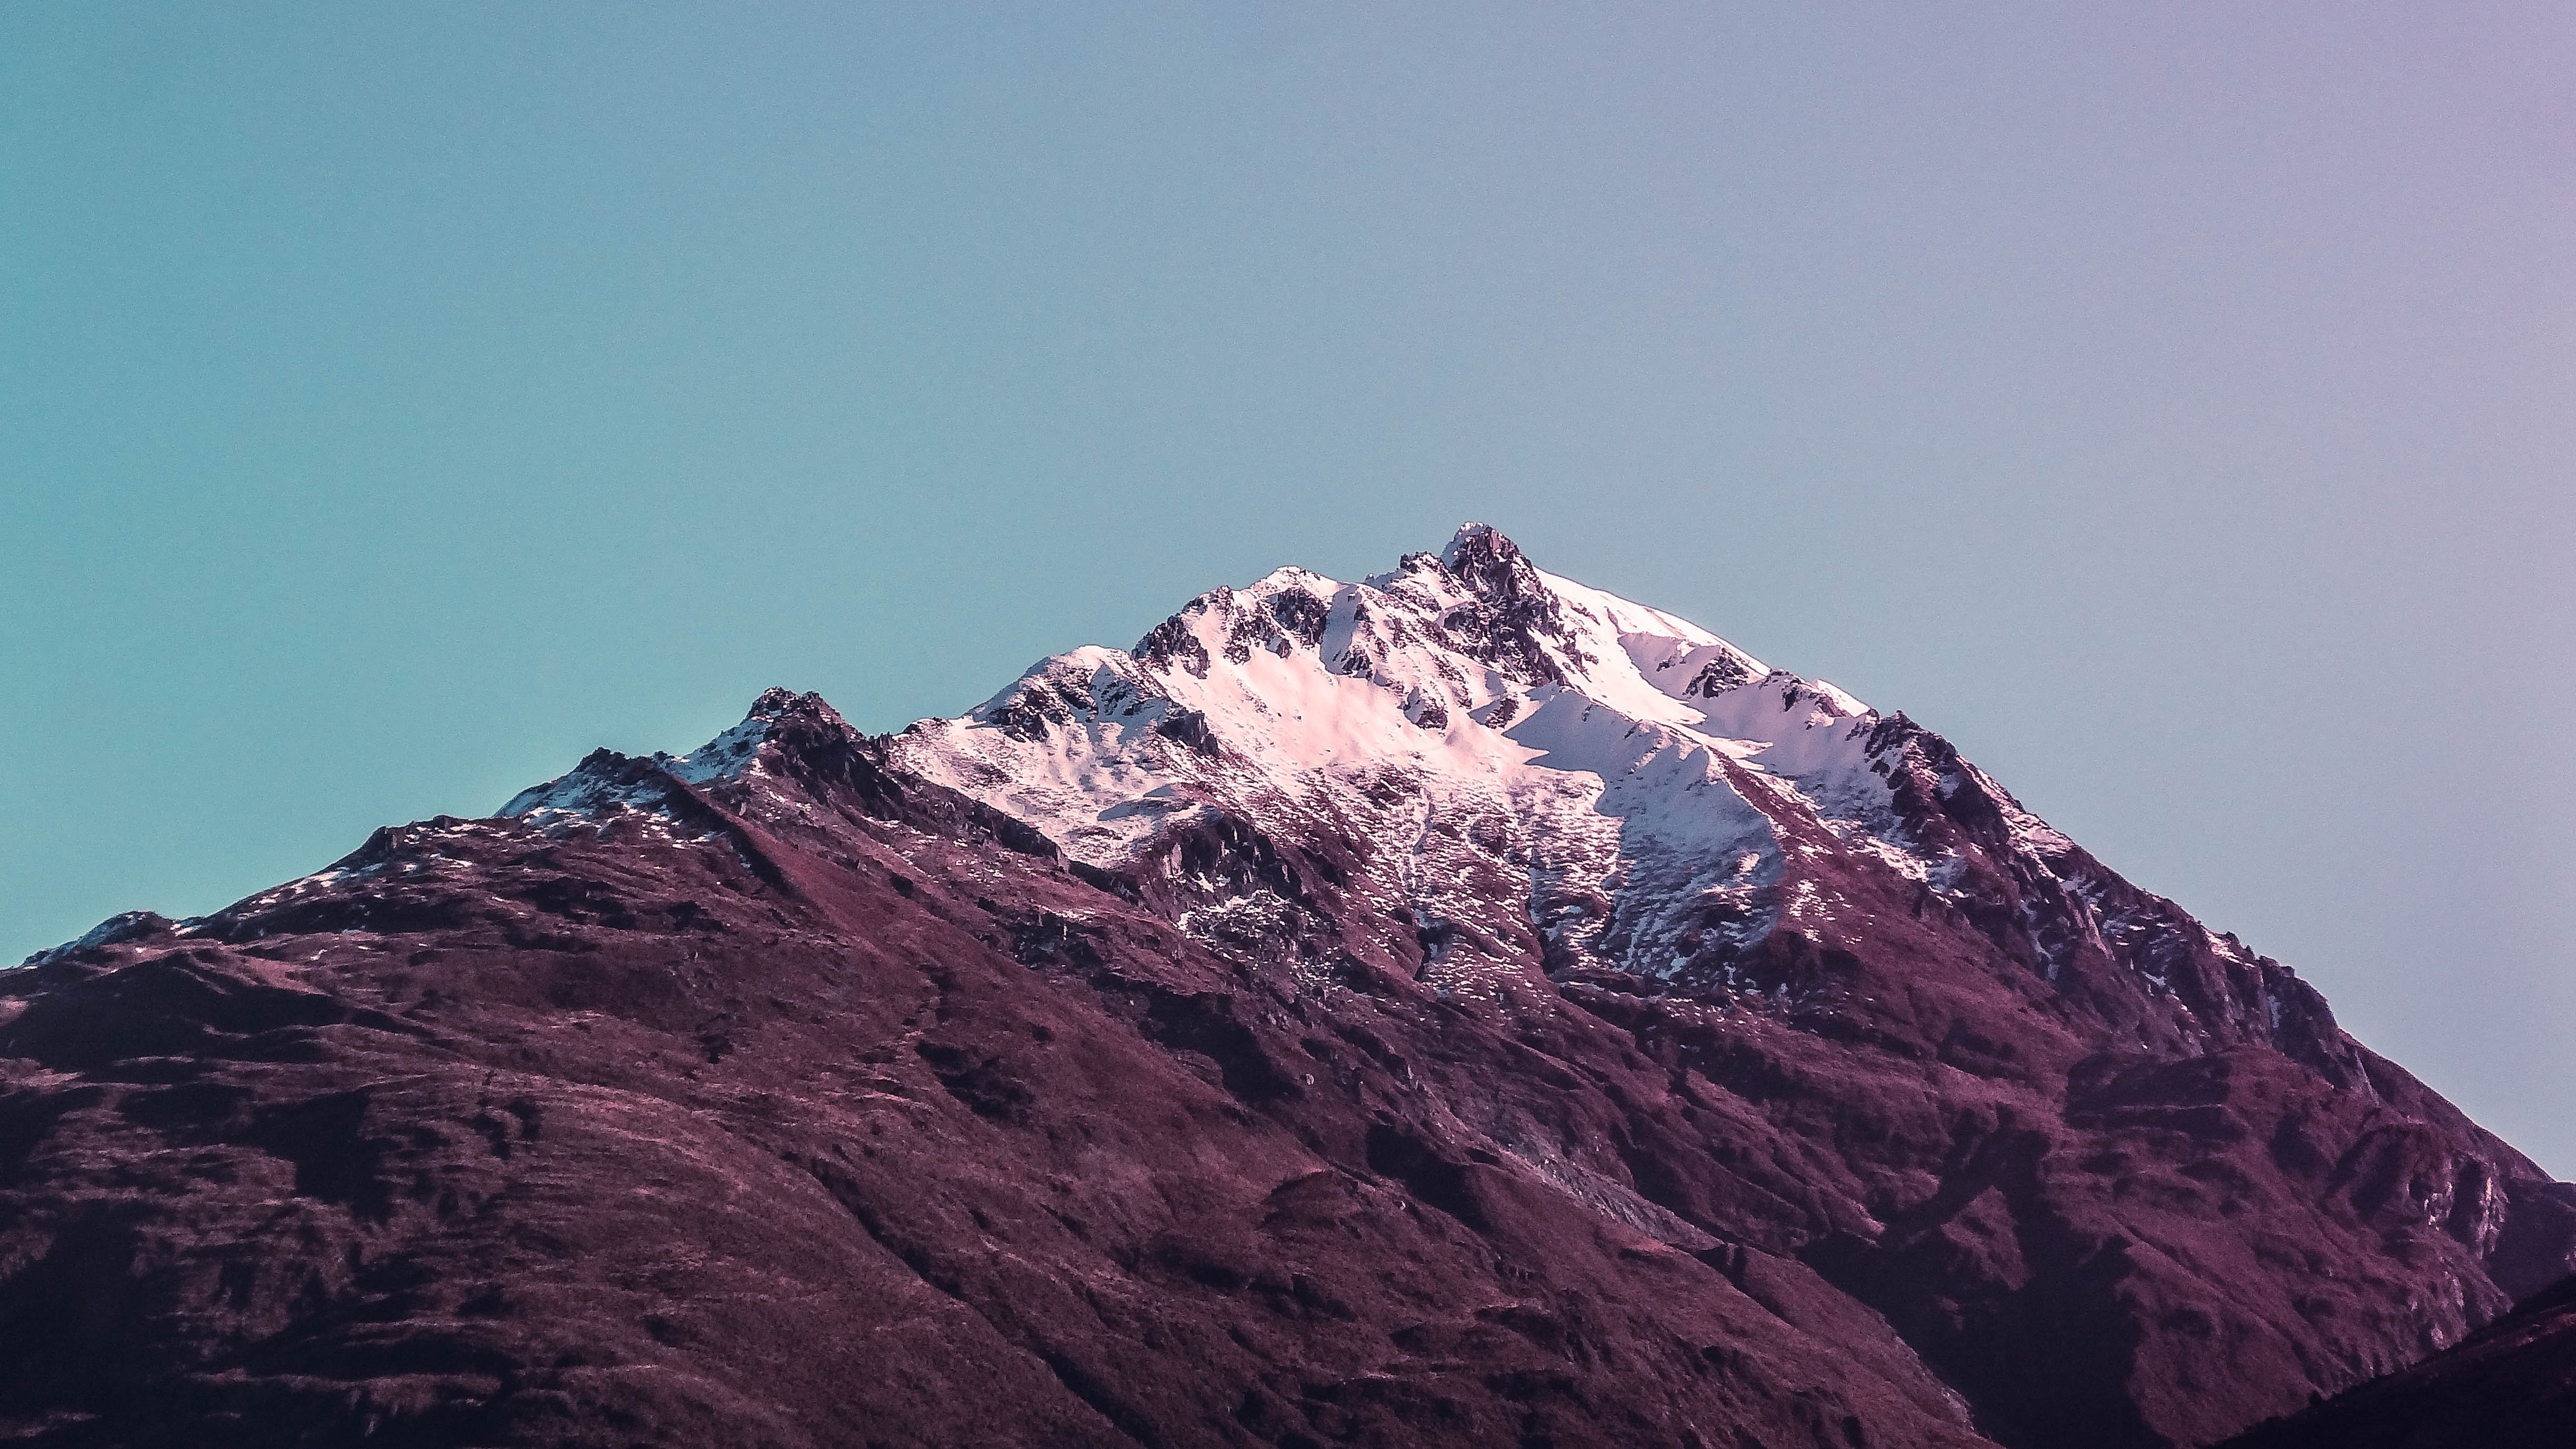 A purple-hued shot of a large snow-capped mountain peak